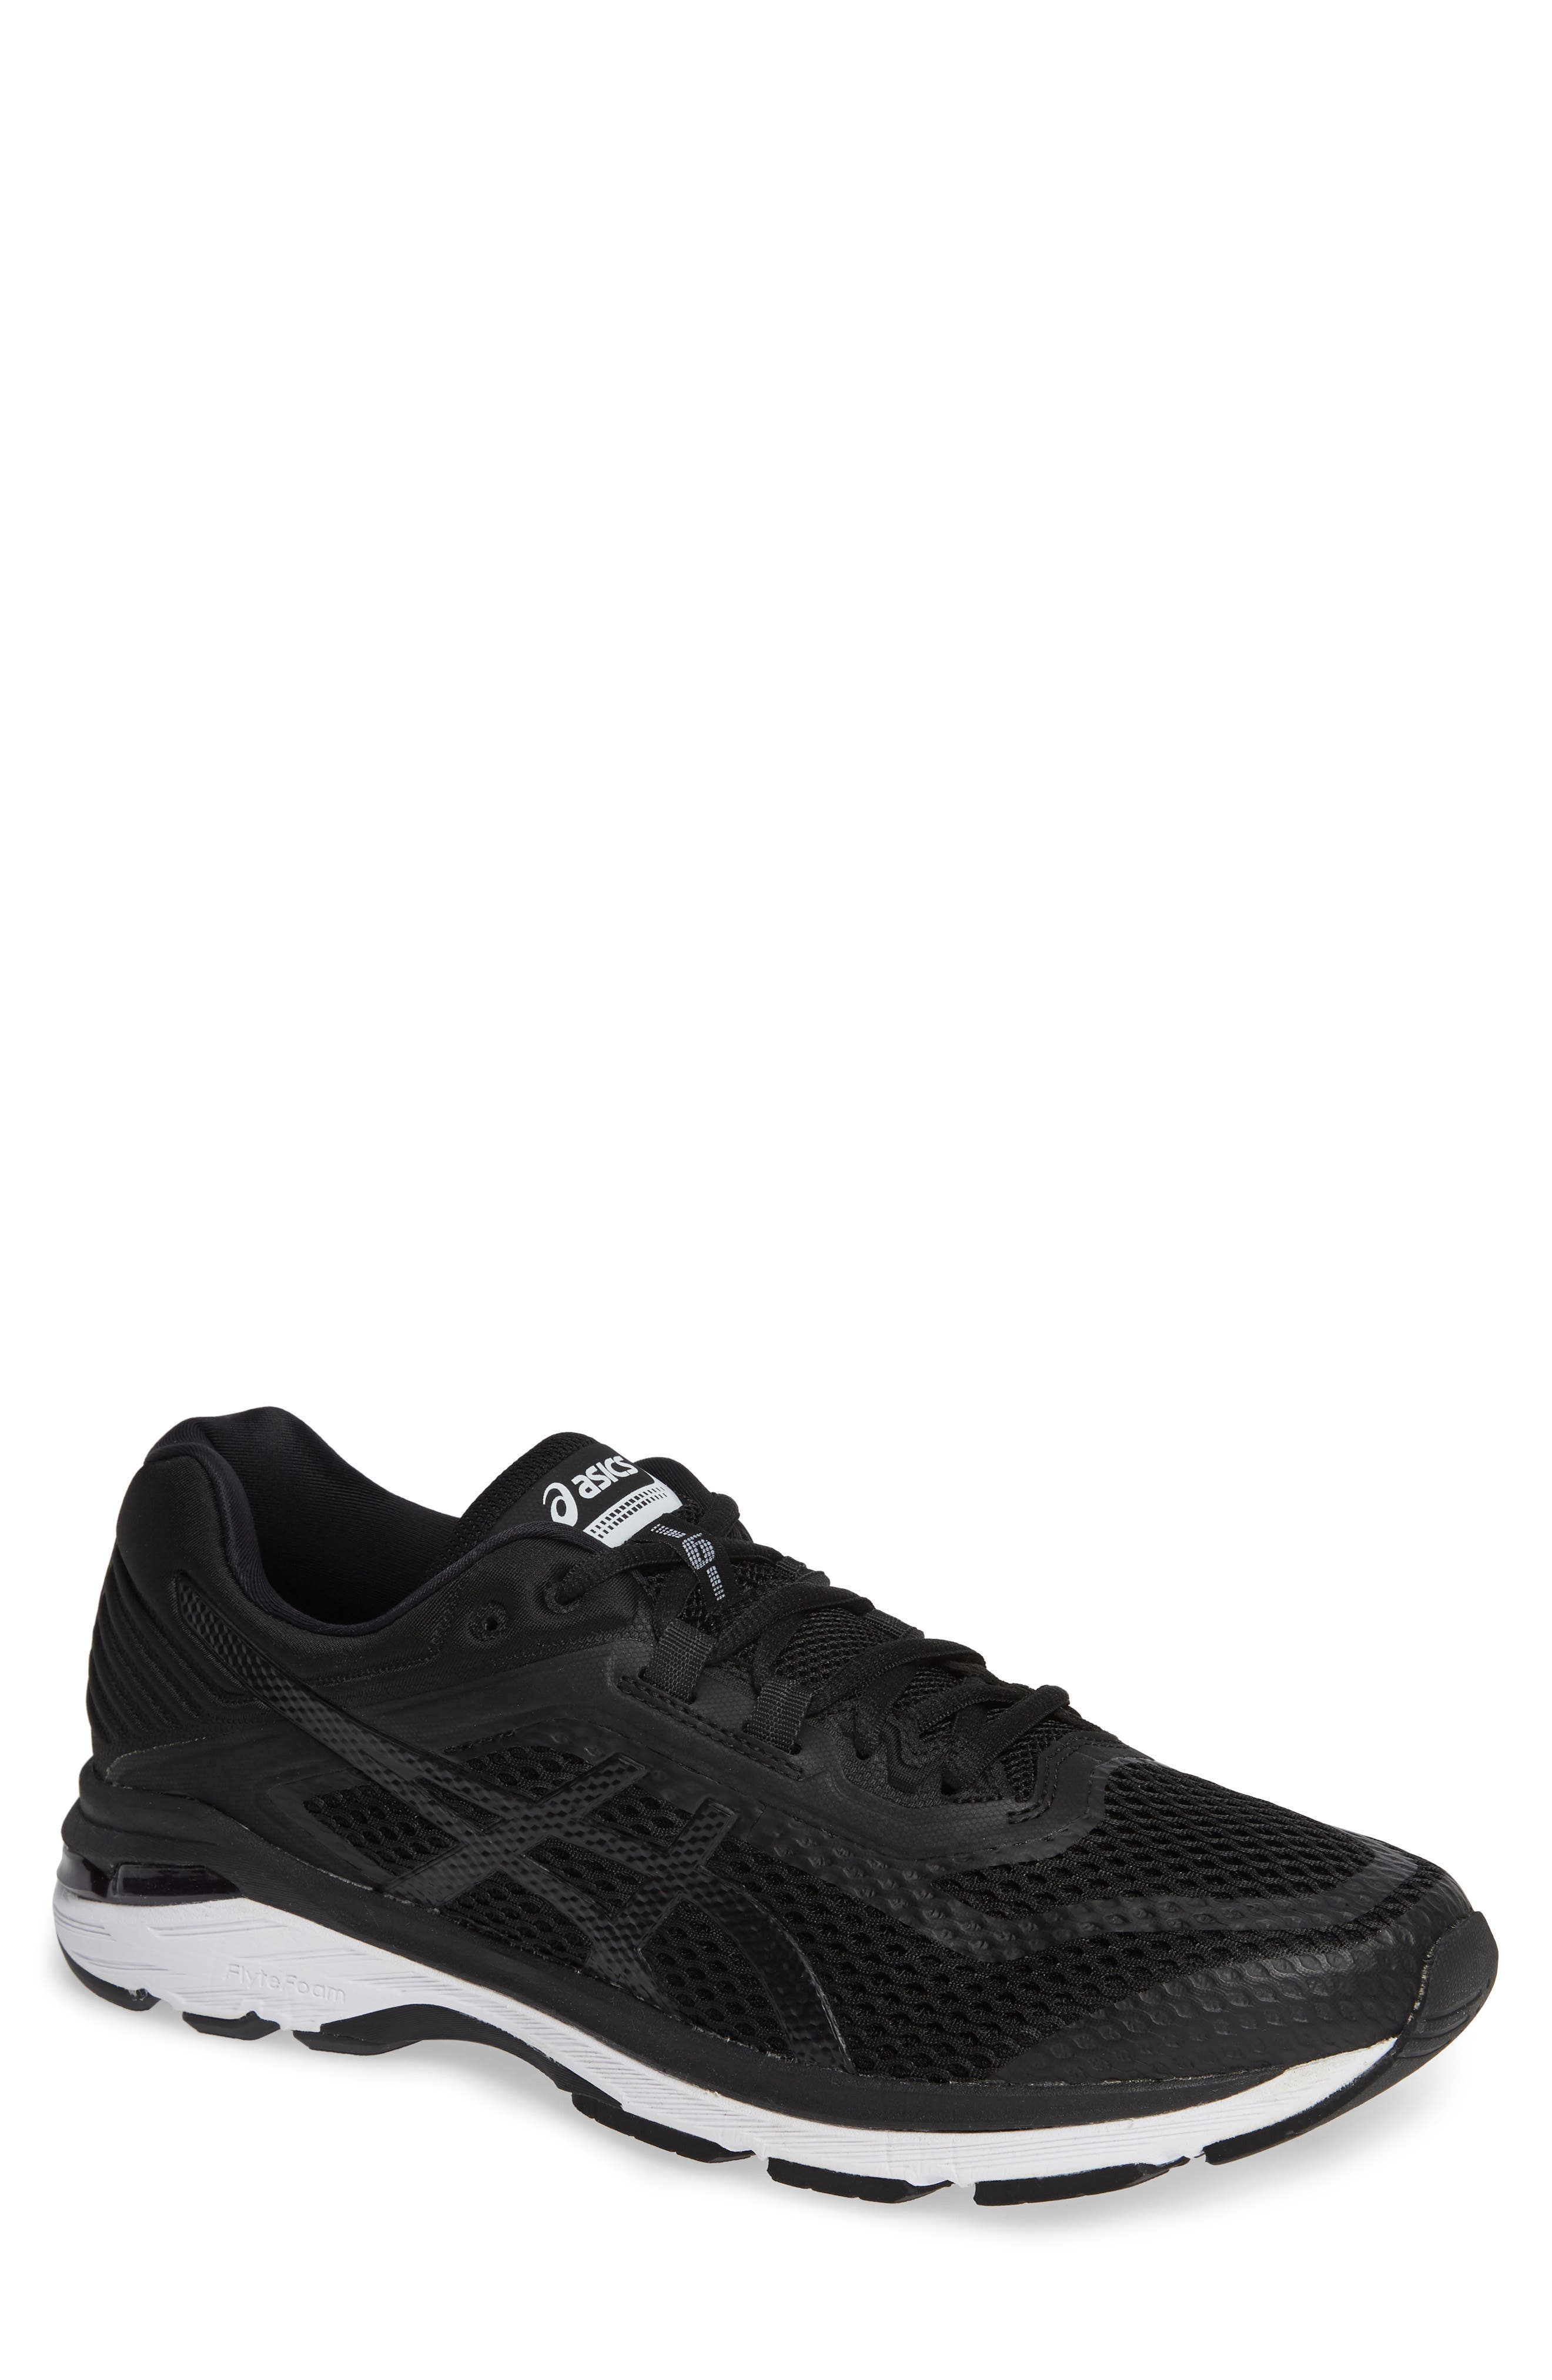 GT-2000 6 Running Shoe, Main, color, 001